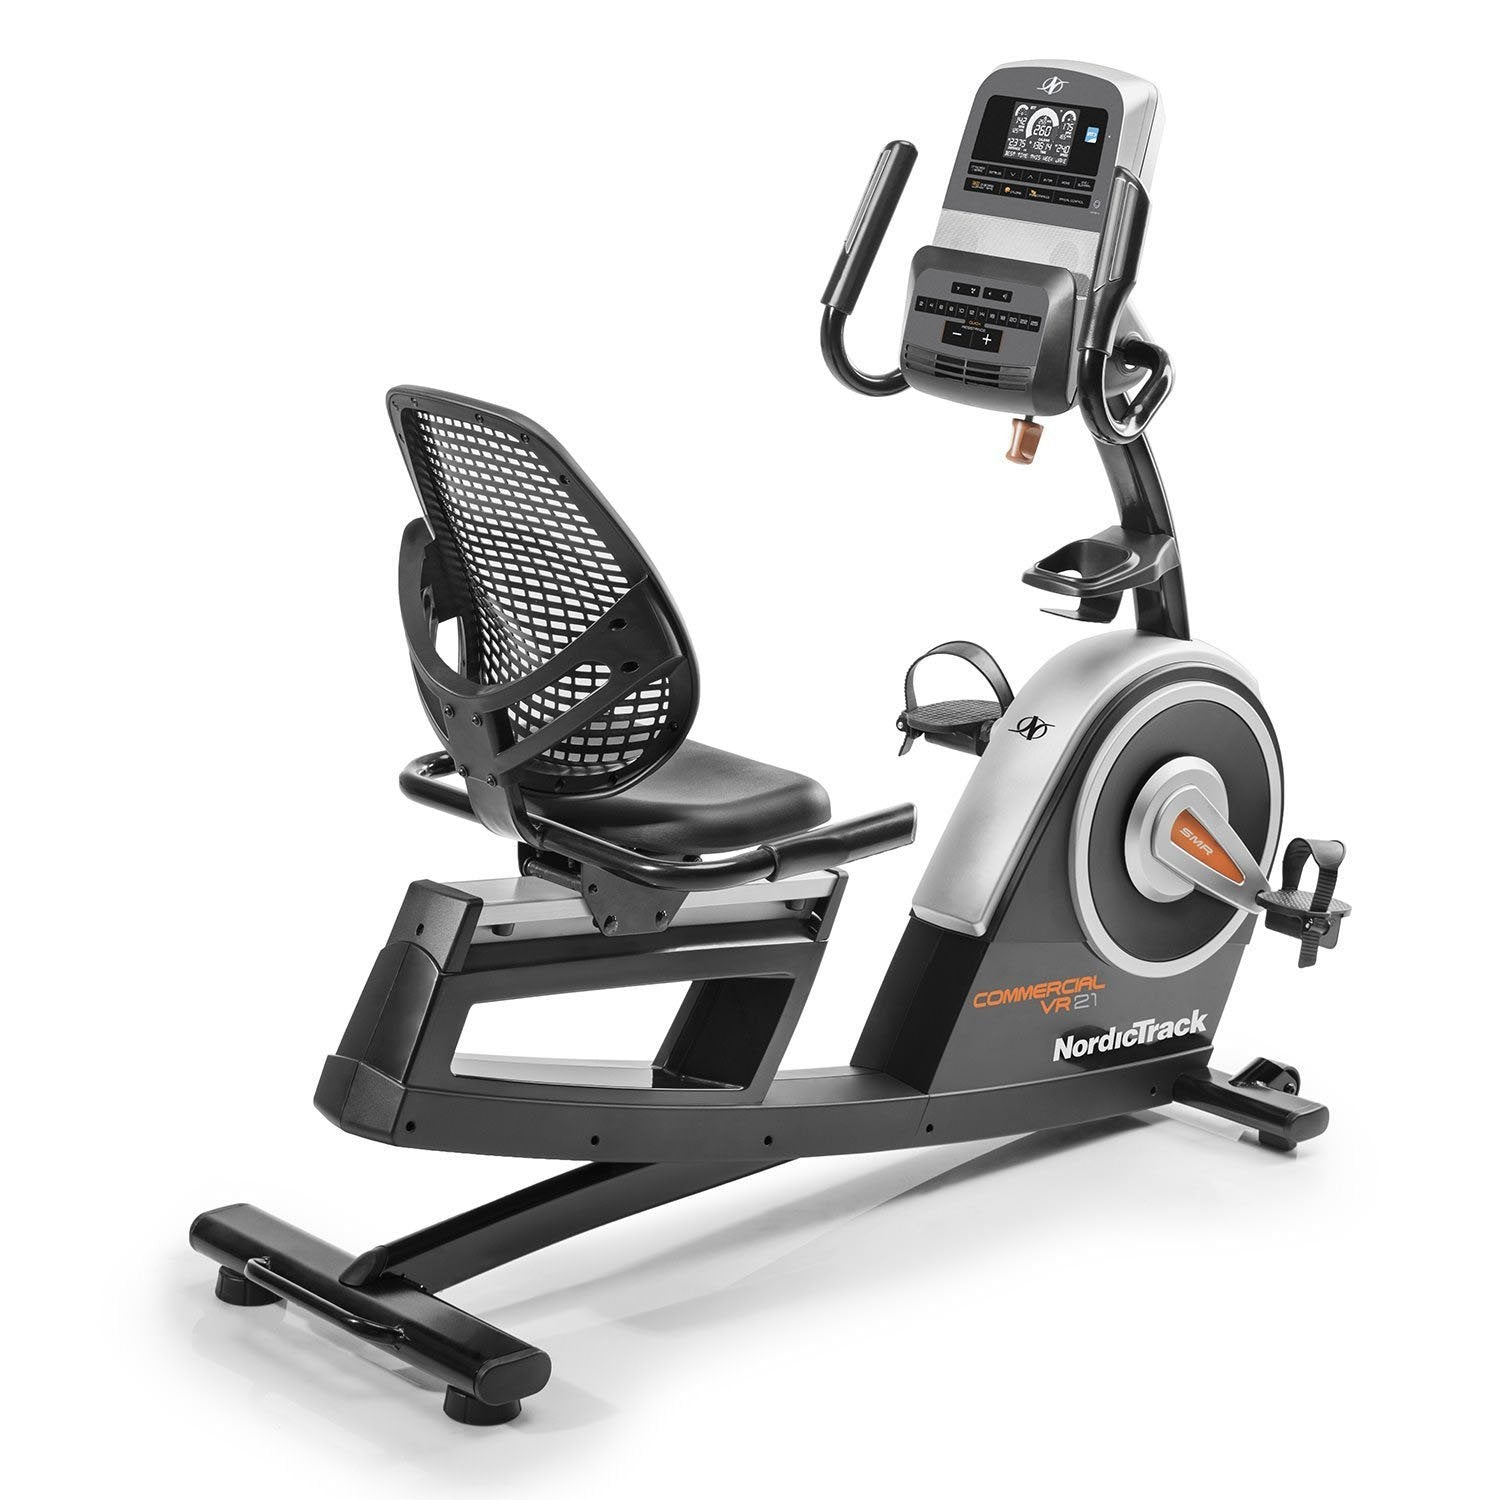 Image of NordicTrack Commercial VR21 Recumbent Exercise Bike